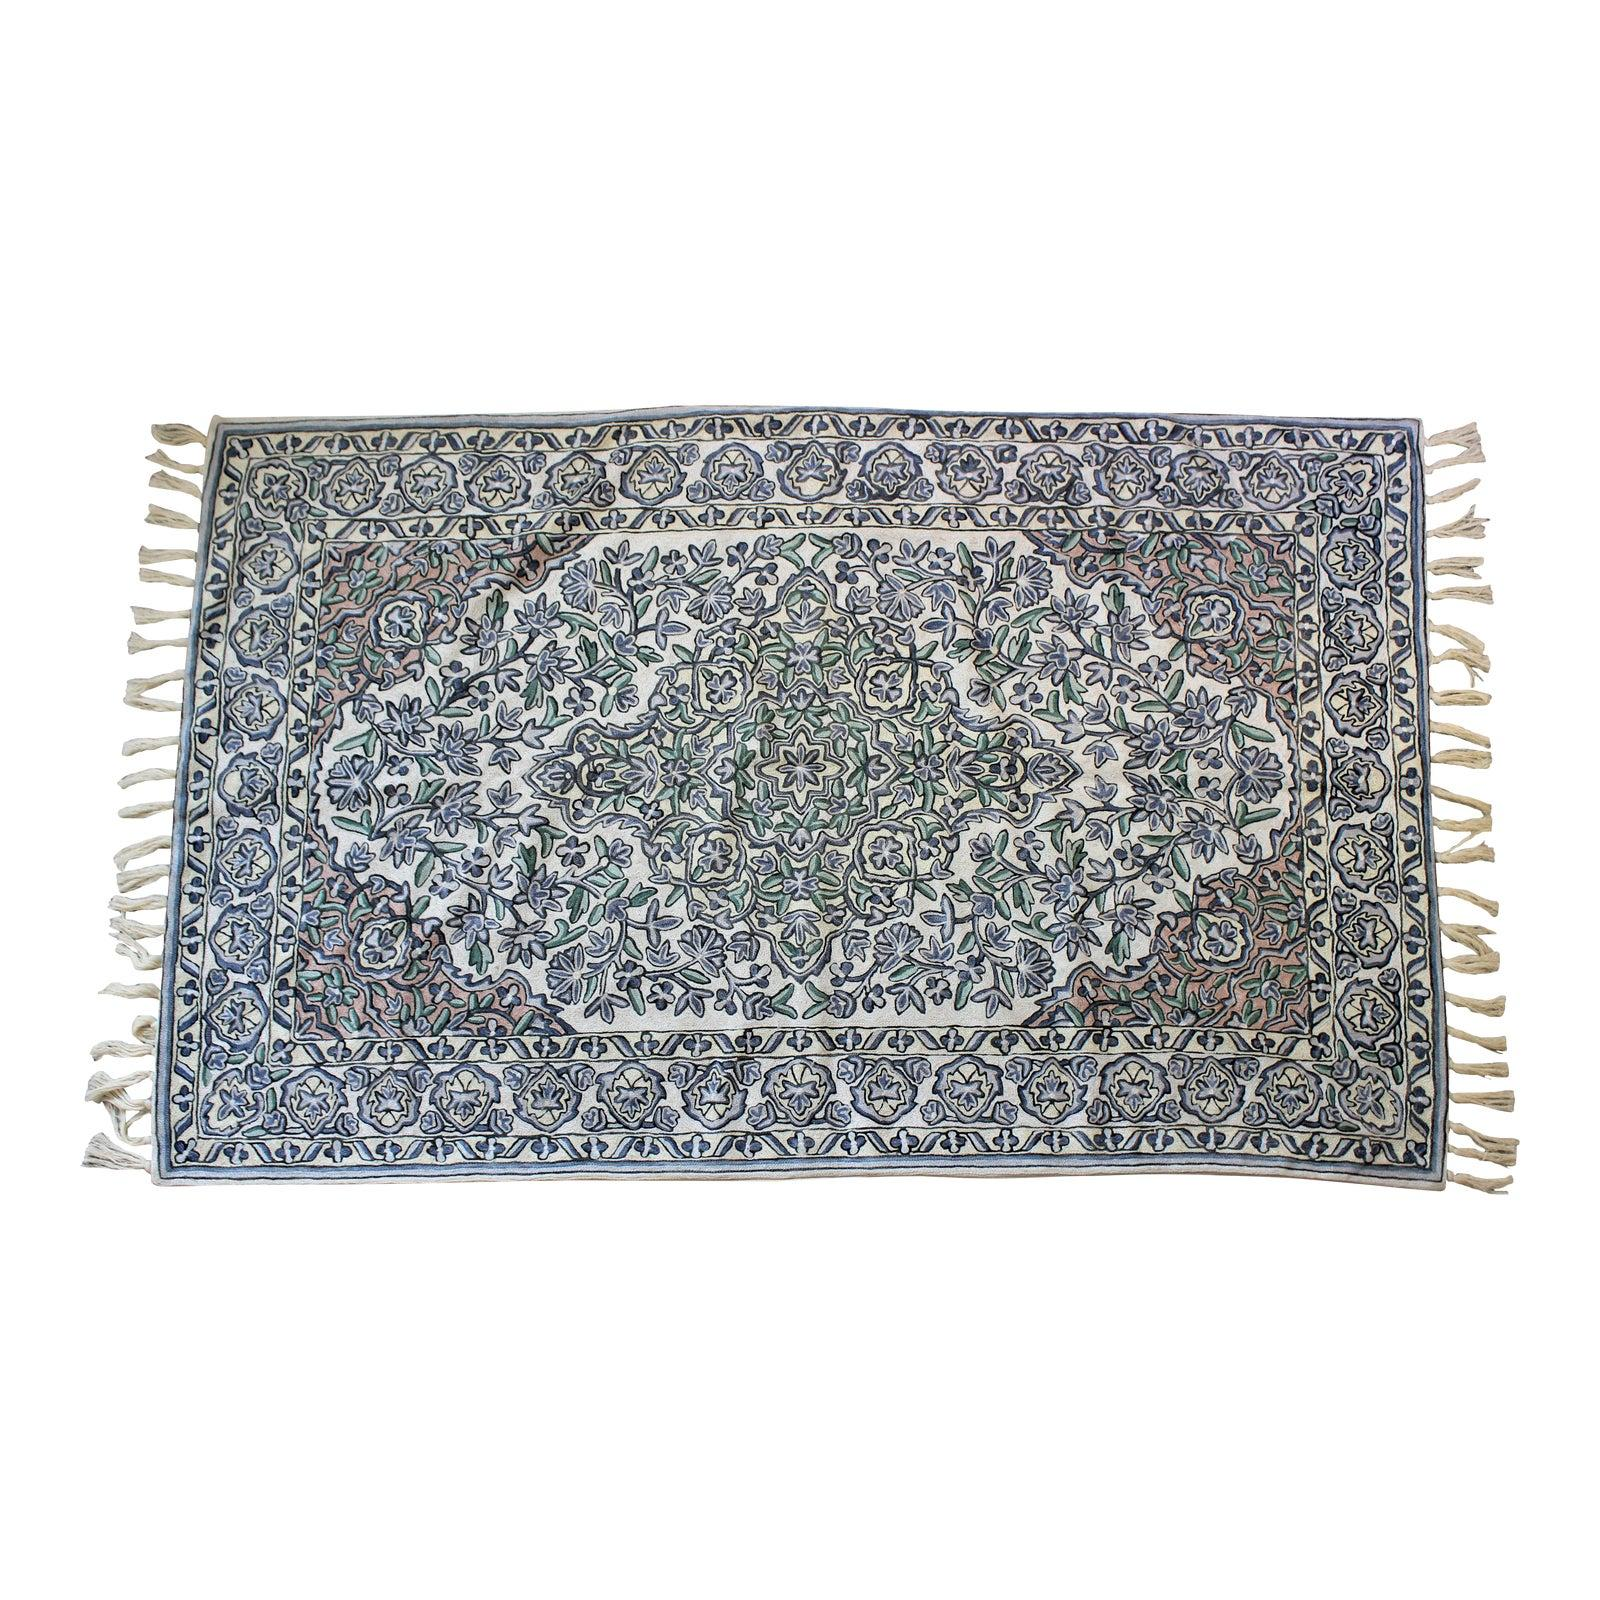 Crewel Embroidered Area Rug or Tapestry